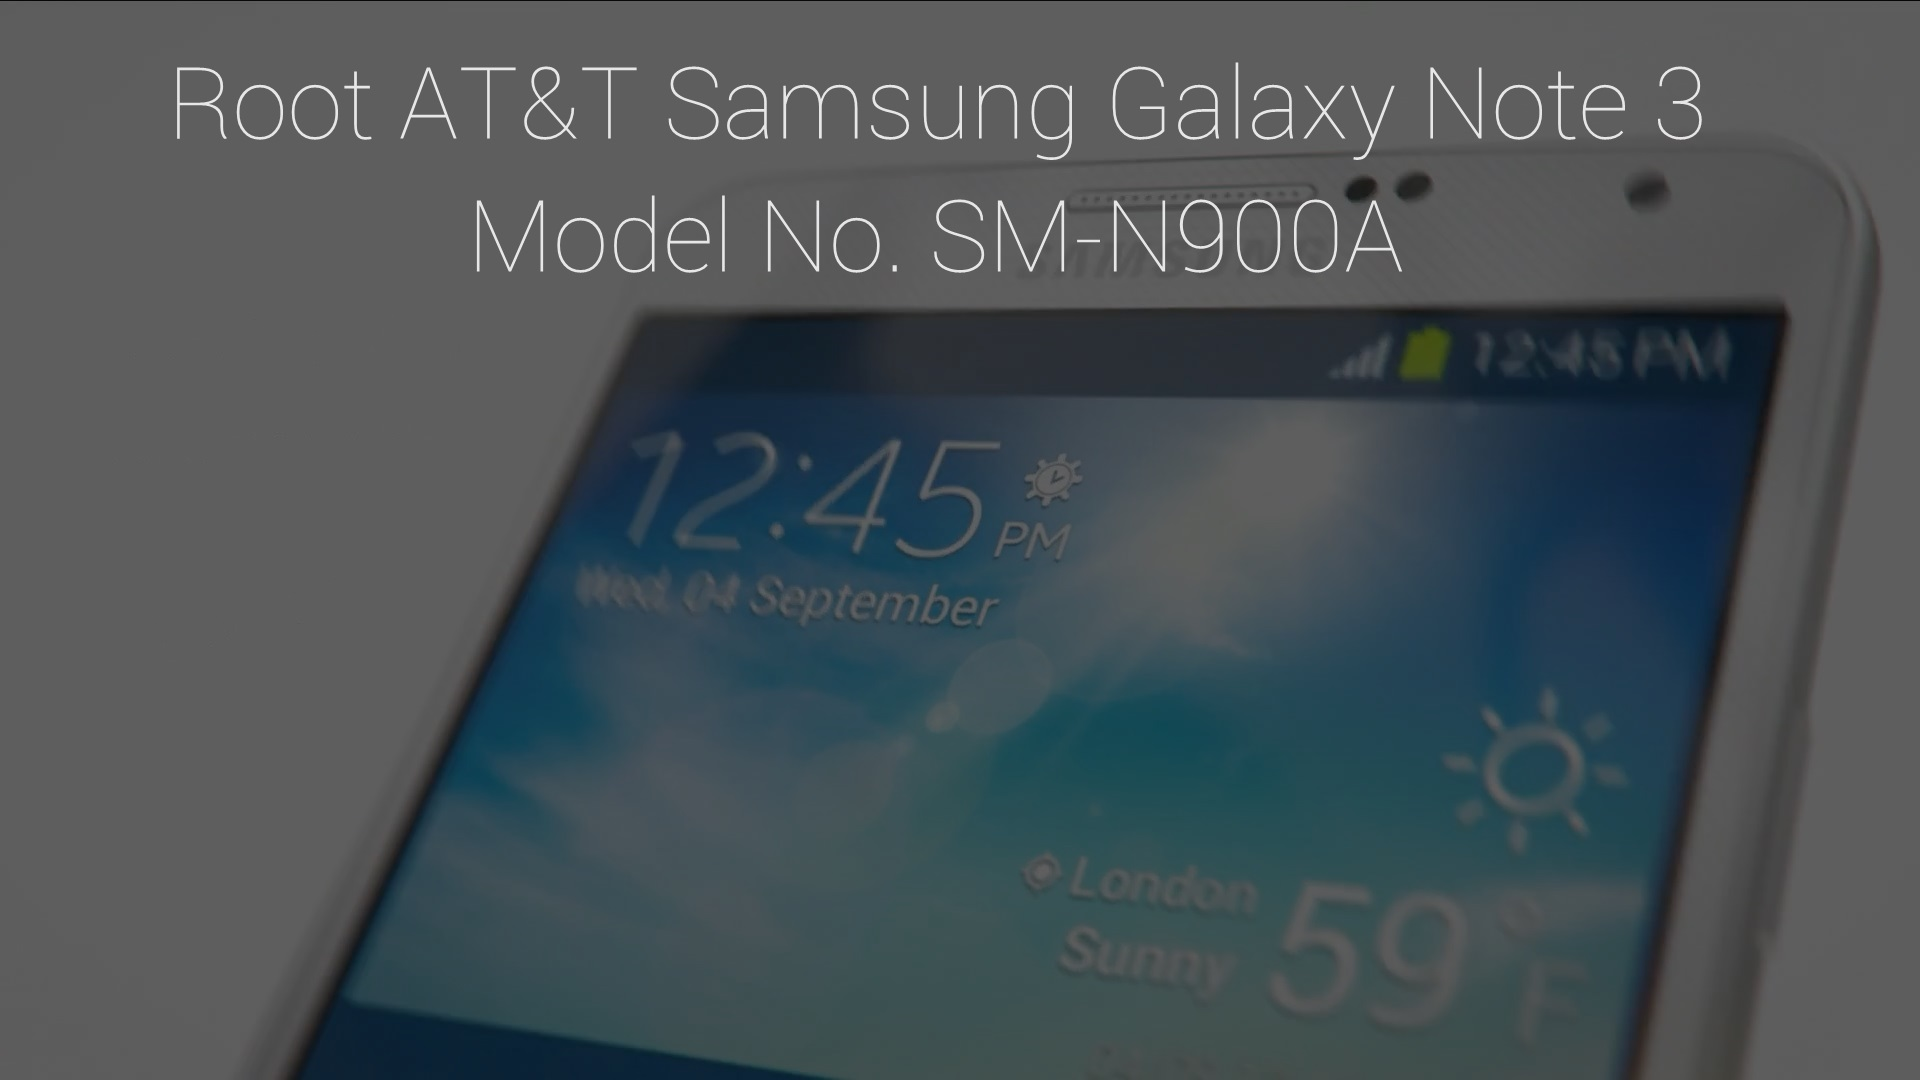 Root AT&T Samsung Galaxy Note III SM-N900A